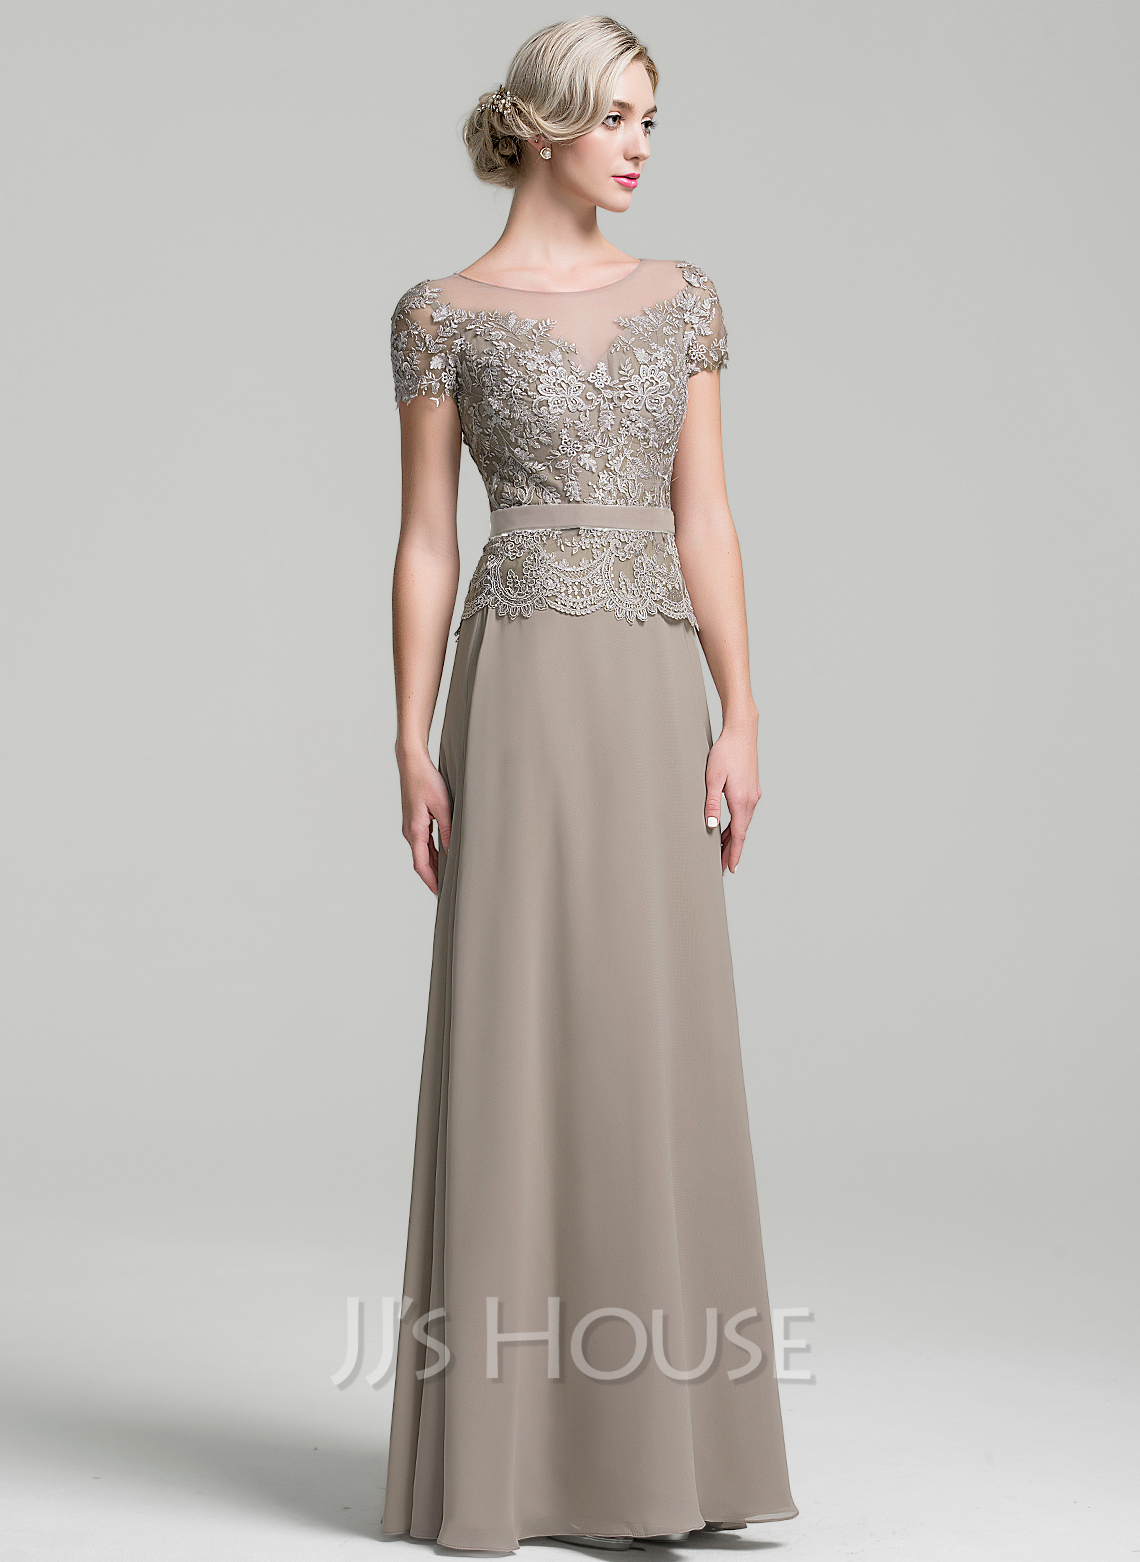 The Mother of Bride Dresses Gowns